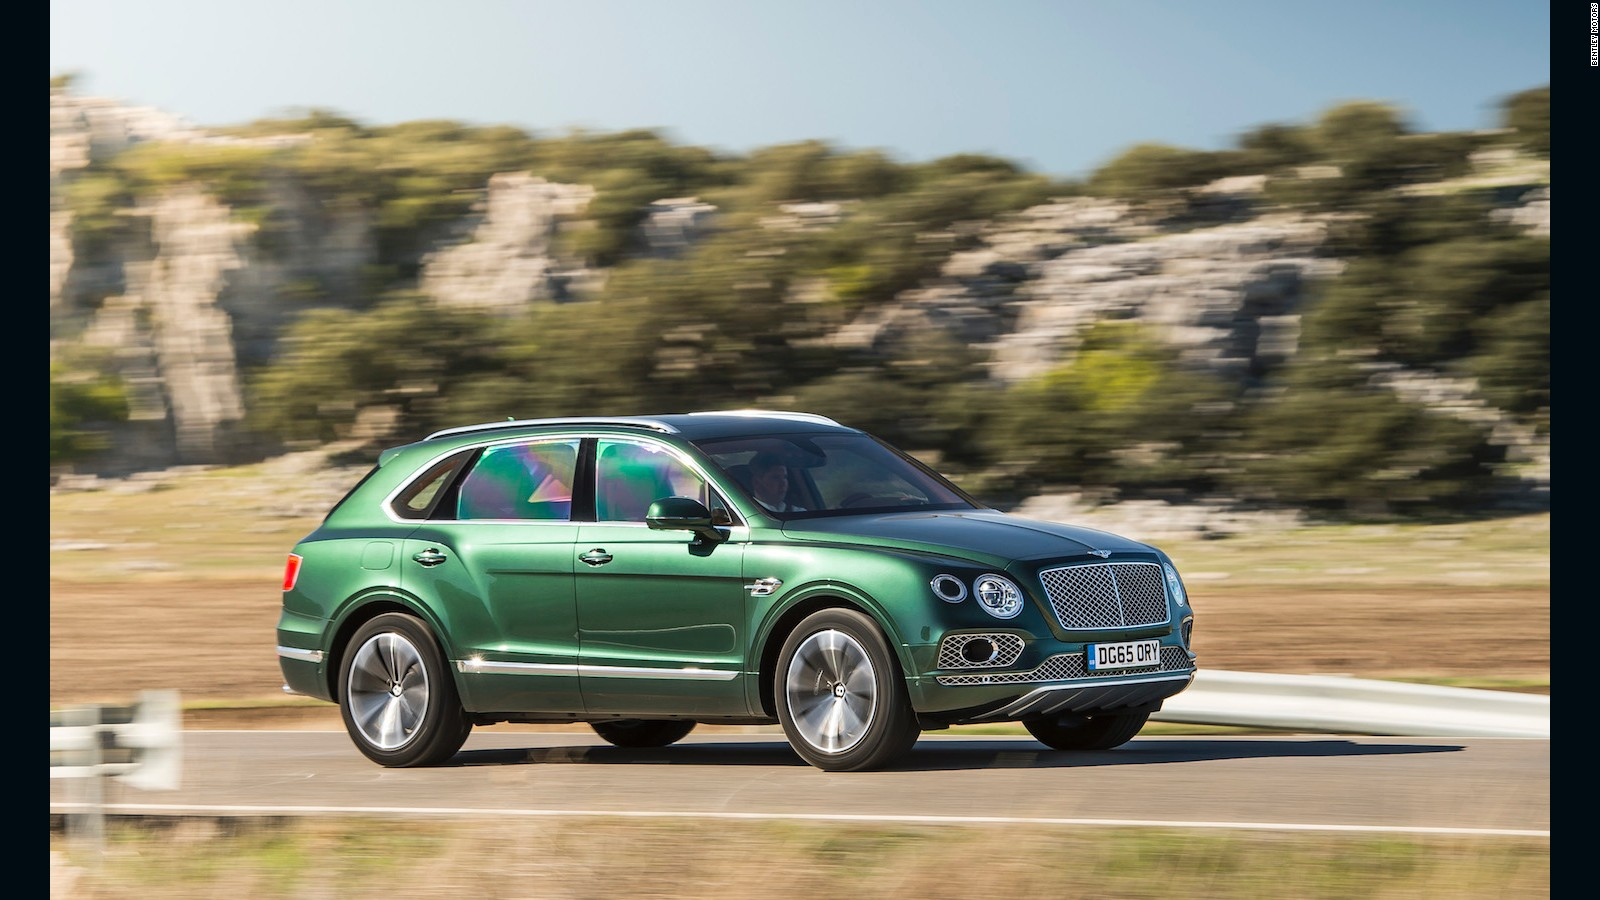 Bentley Vs Range Rover The Ultimate Suv Showdown Cnn Style